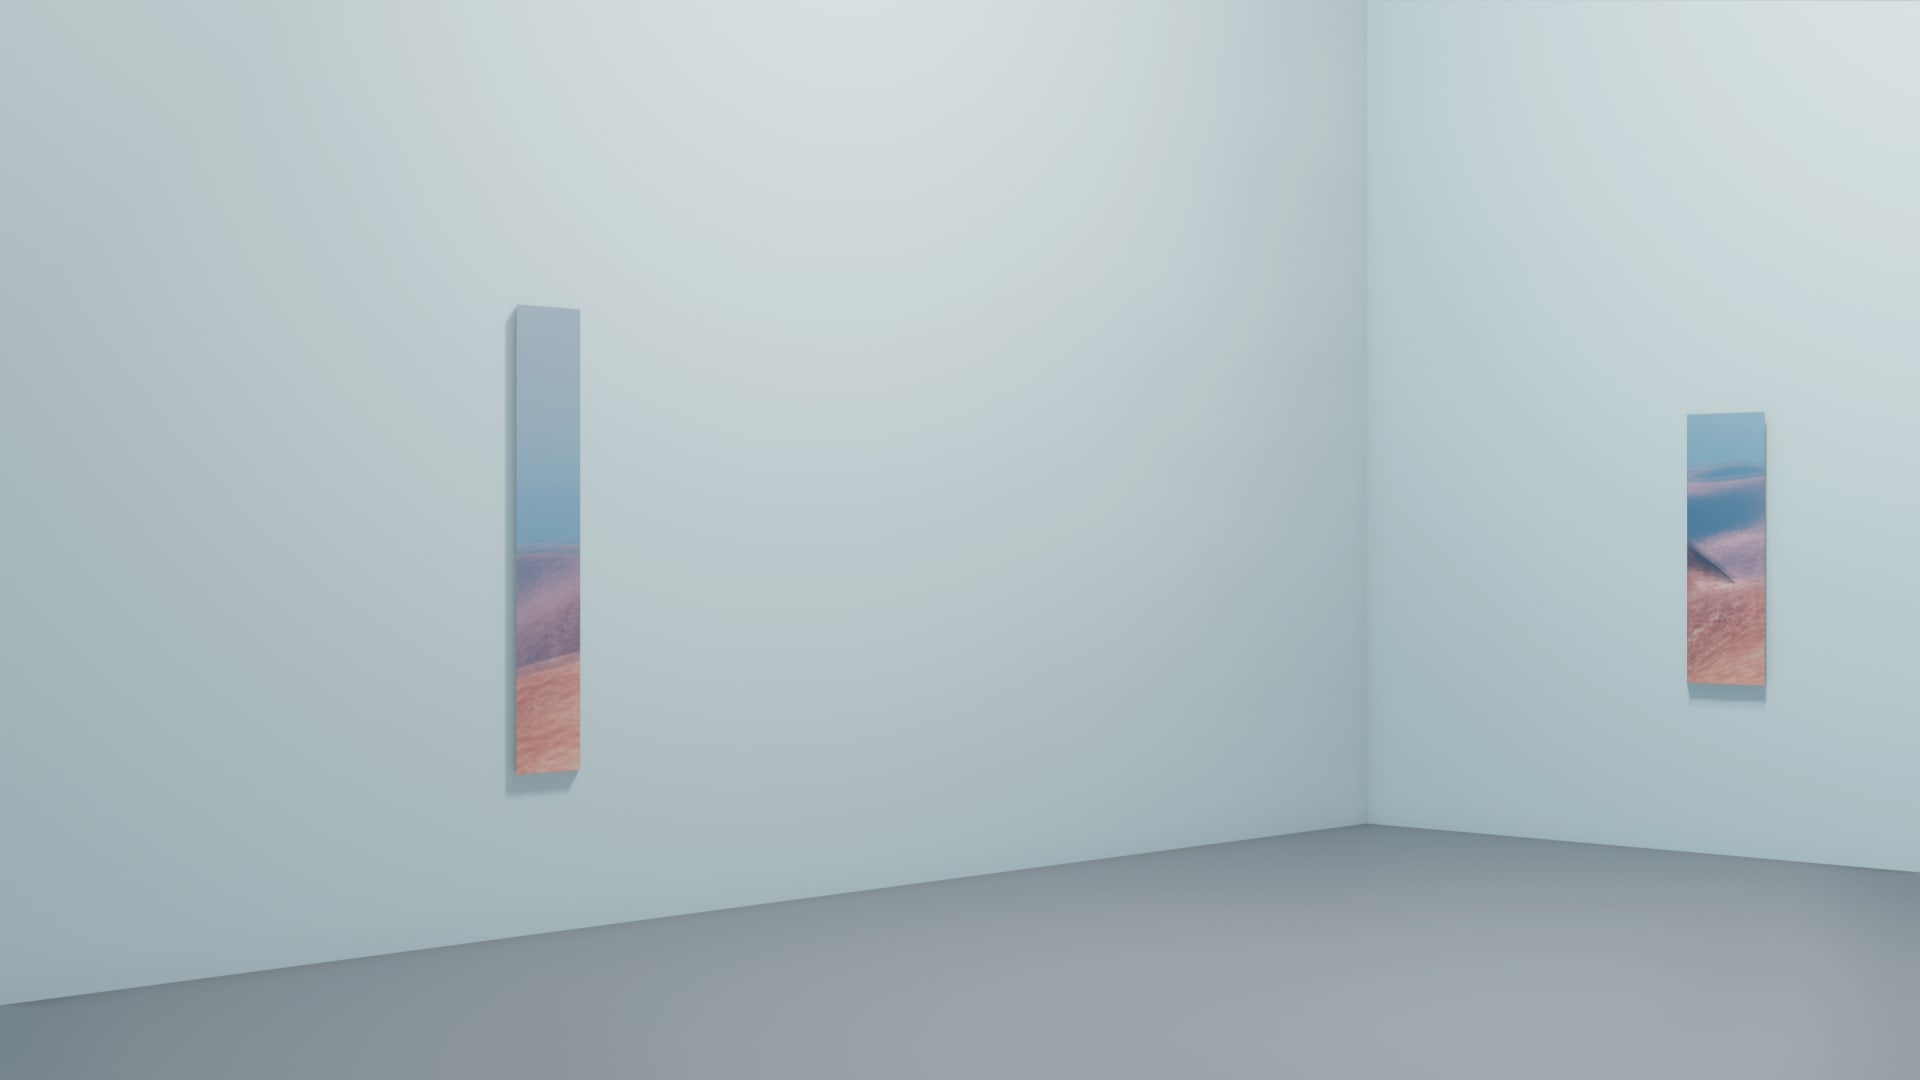 rendered_installation_view[right wall]